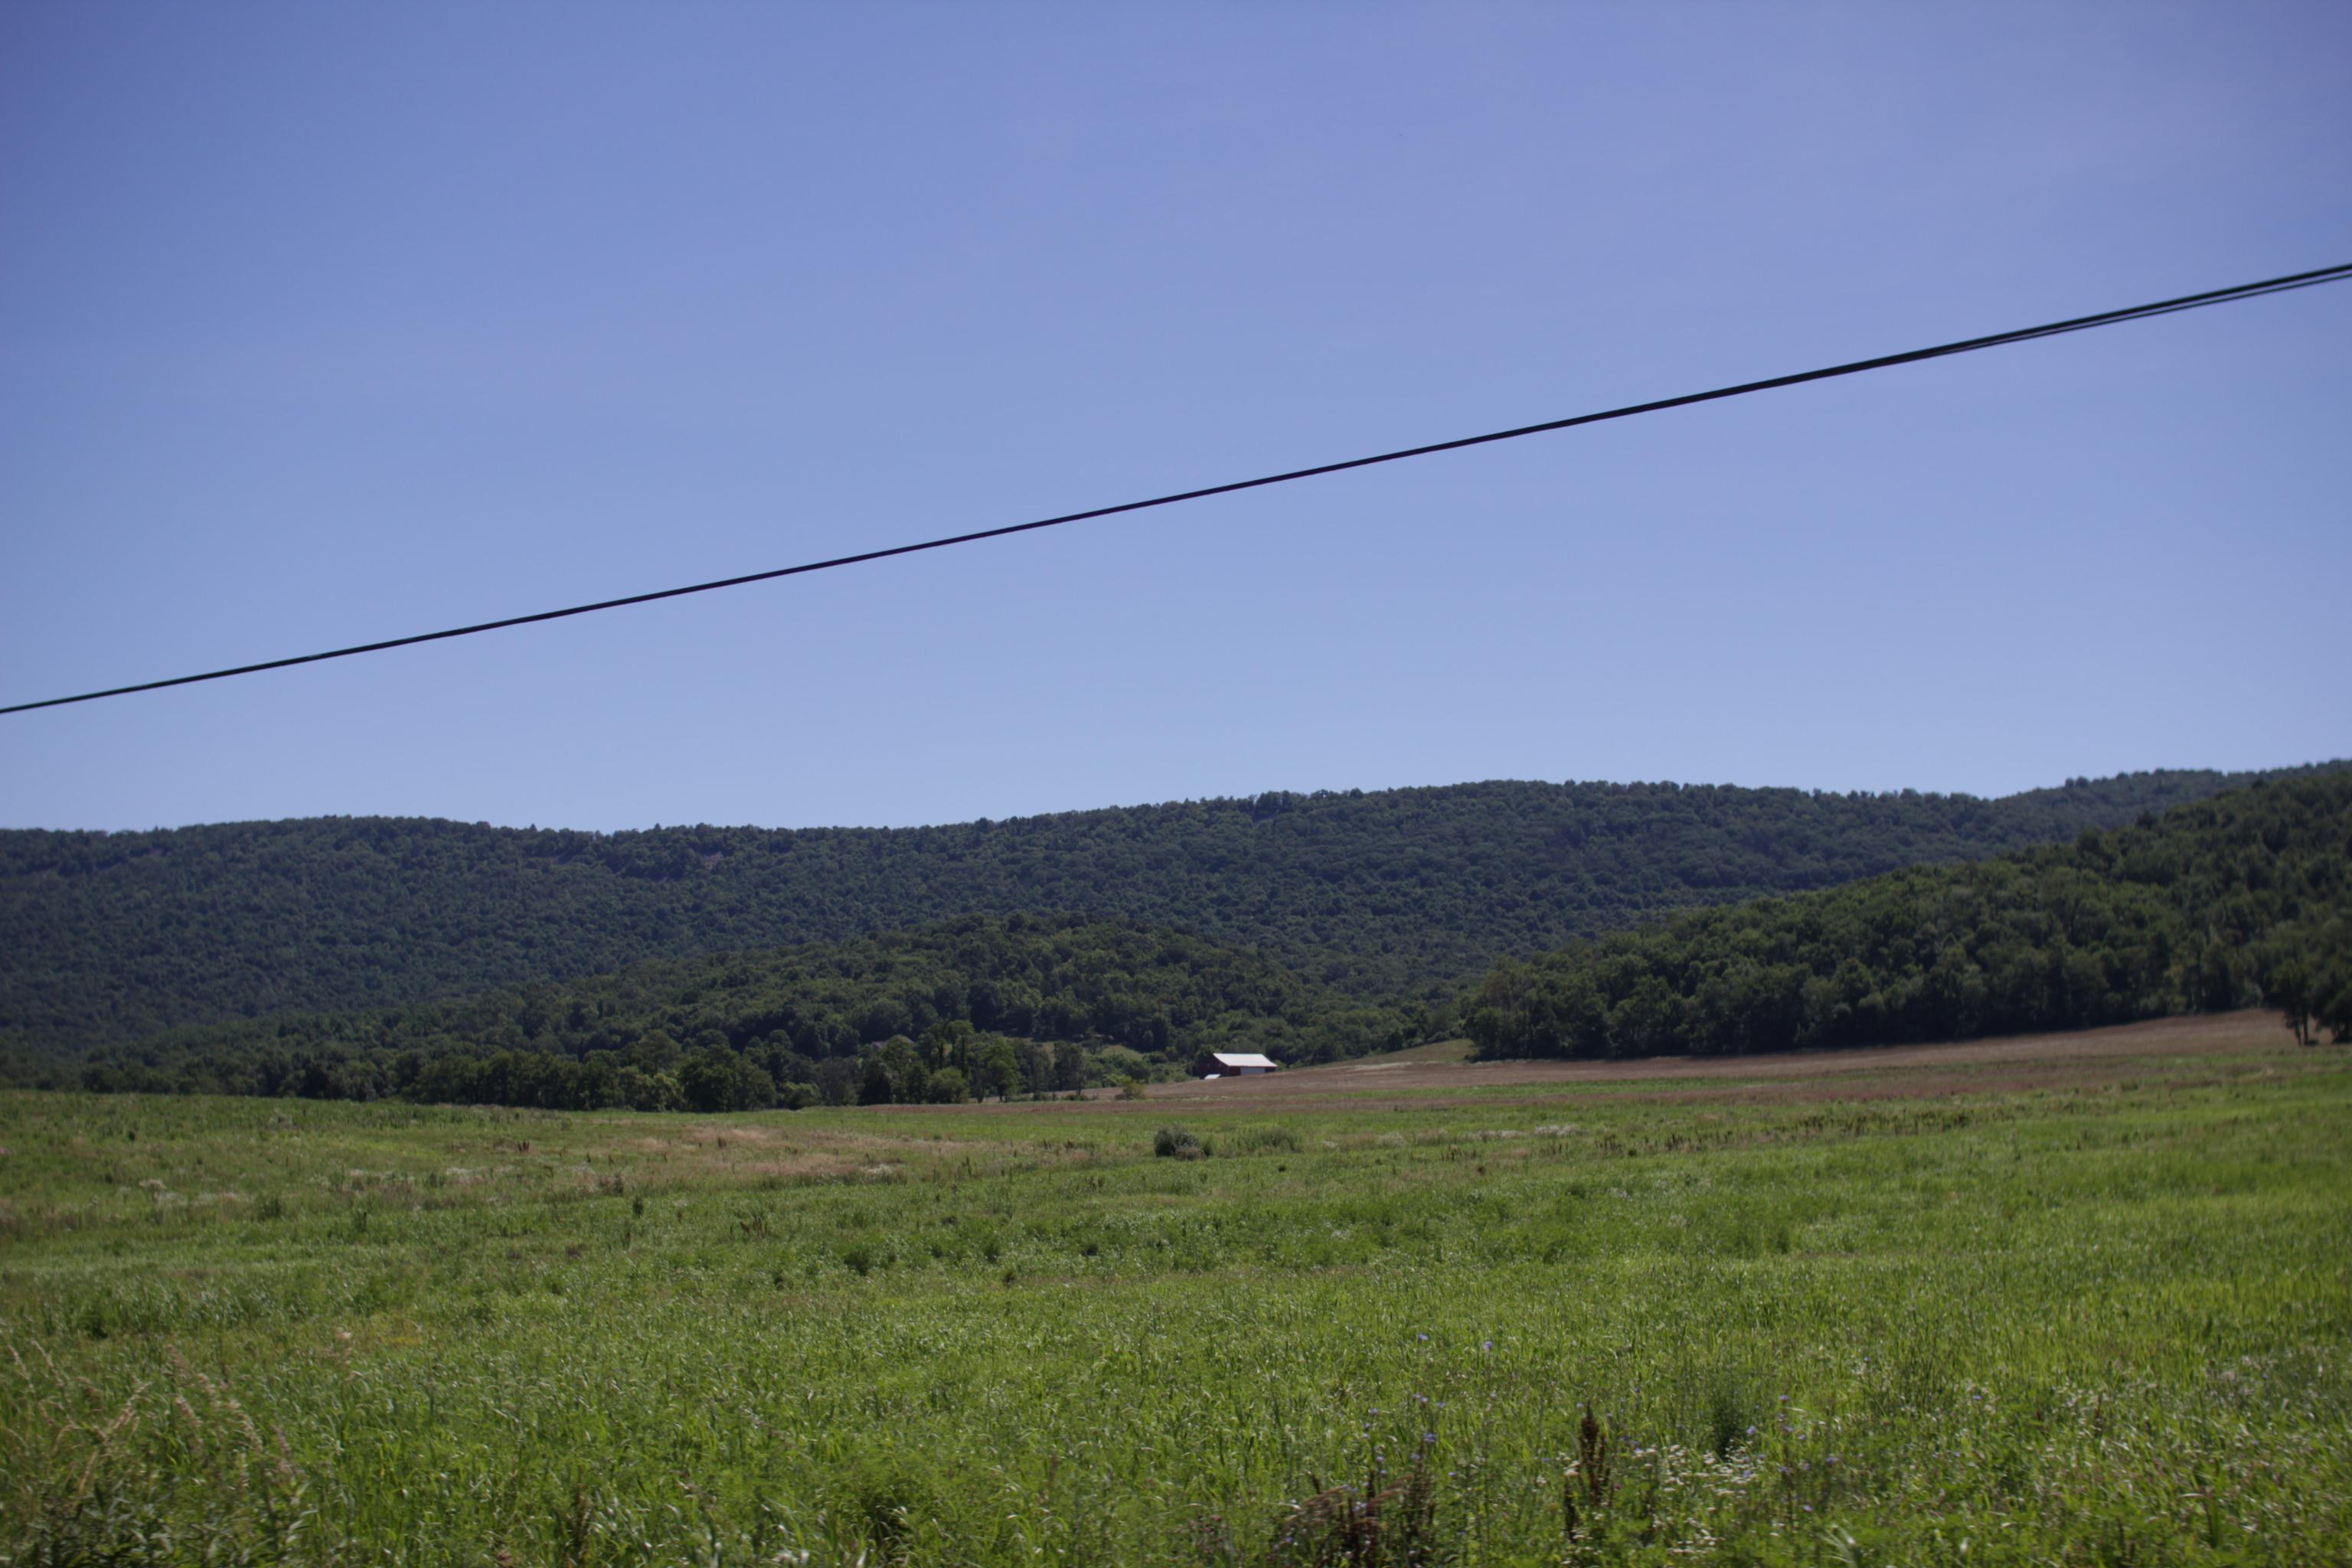 fields with distant rolling hills, a small house, a powerline cutting across the view